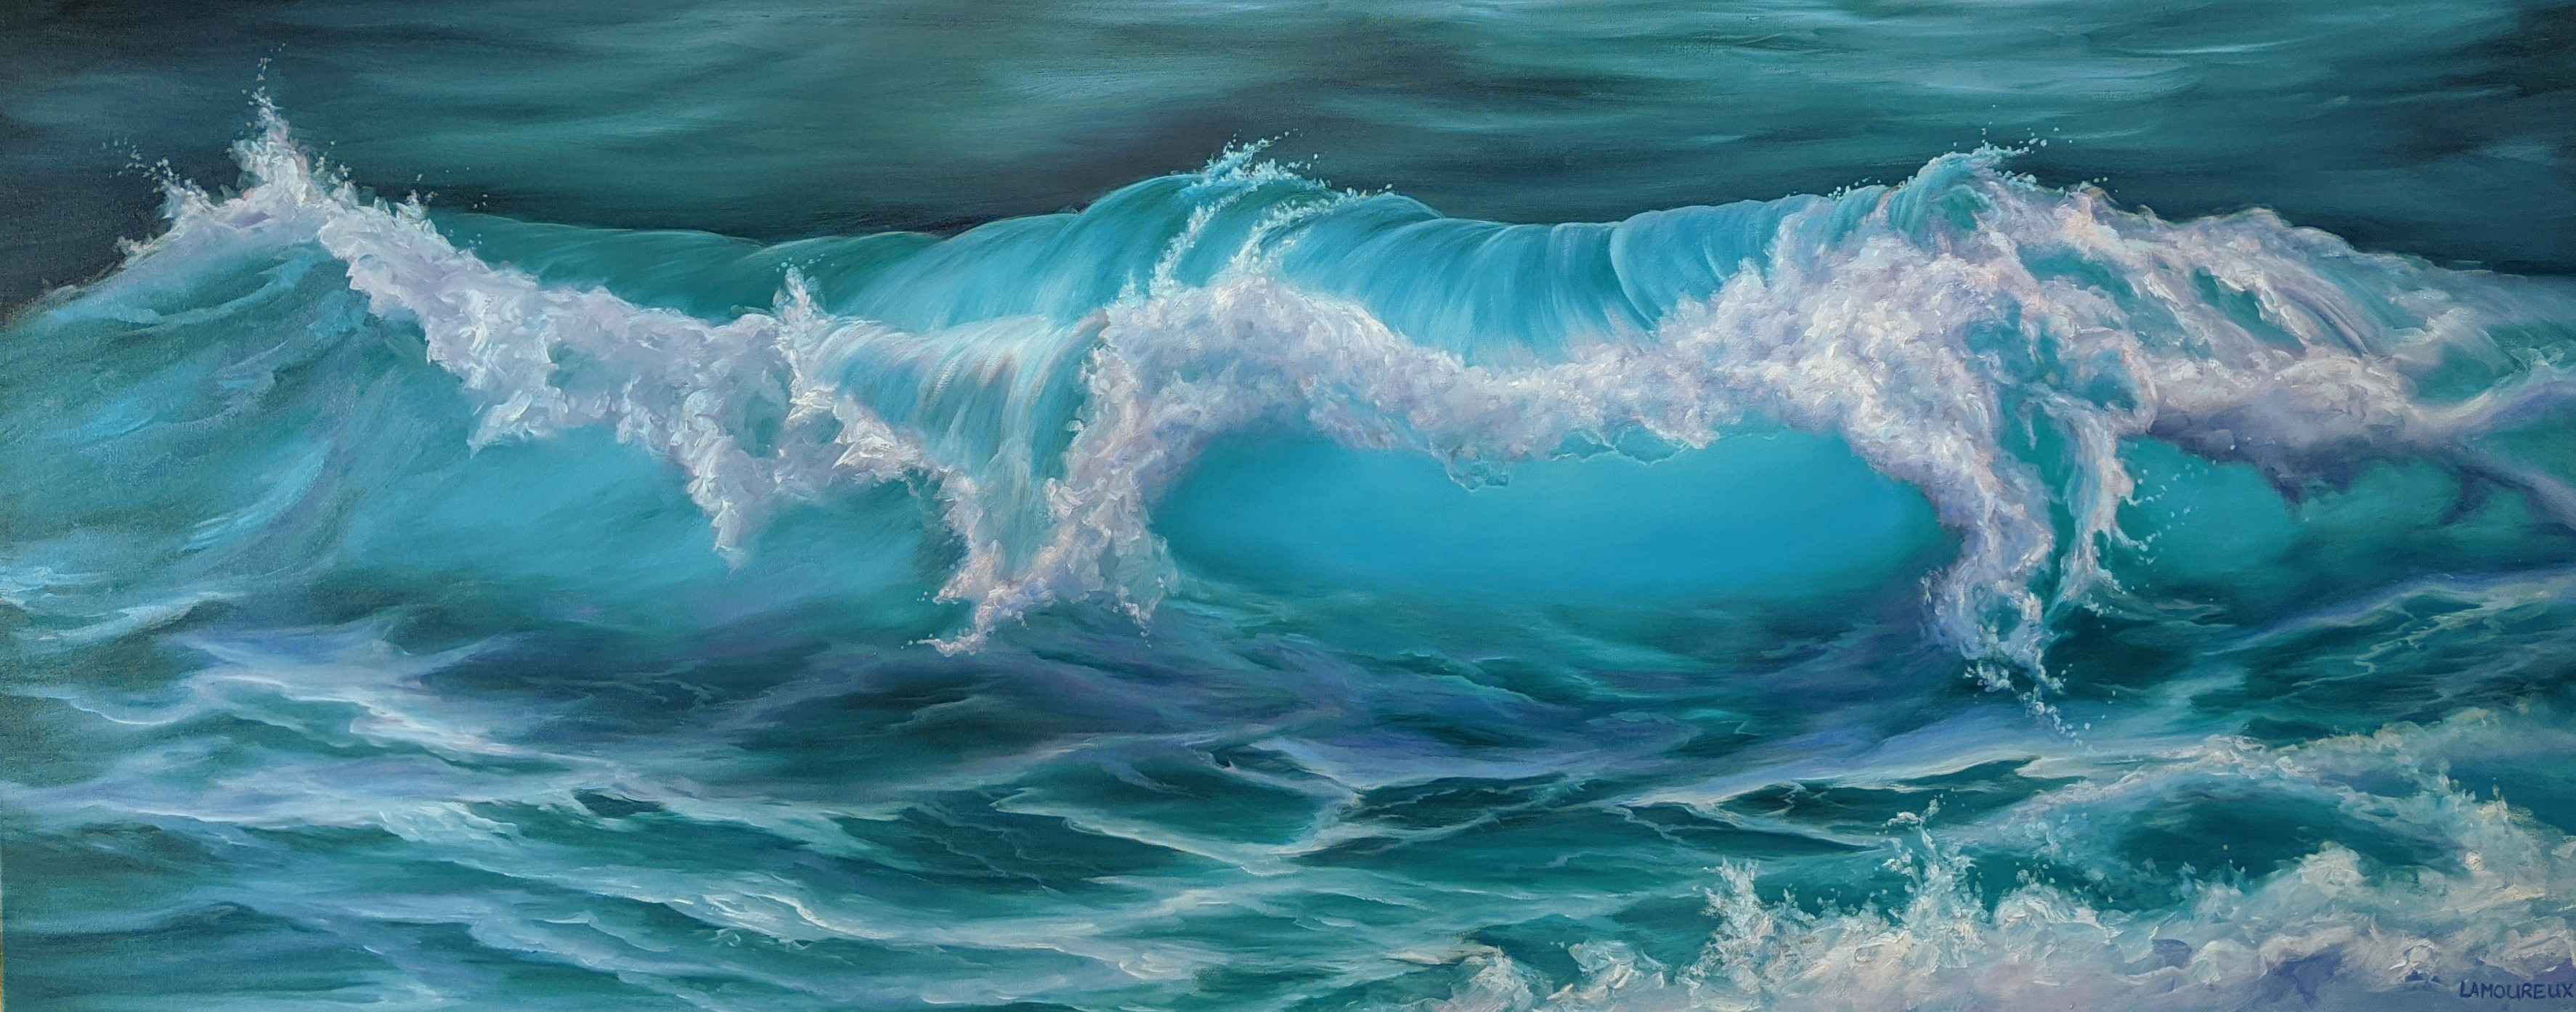 Summer Swell by  Julie Lamoureux - Masterpiece Online